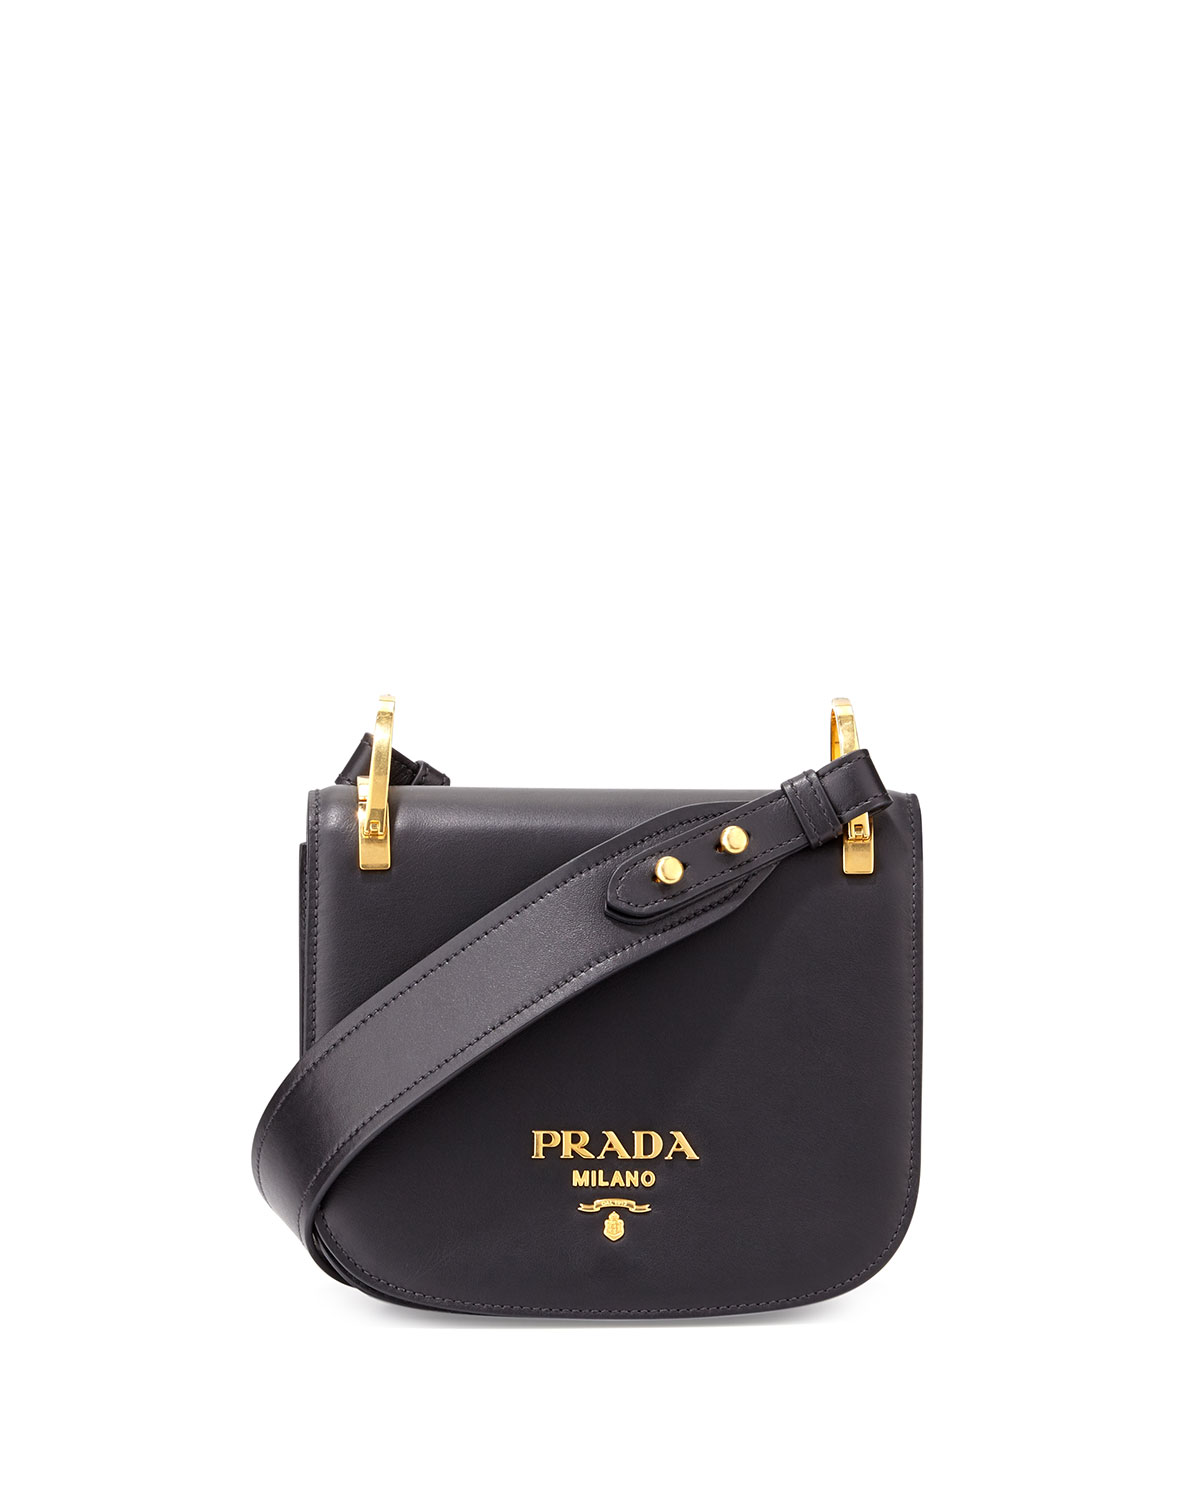 7097c40bc632 Prada Pionniere Leather Shoulder Bag, Black (Nero) | Neiman Marcus